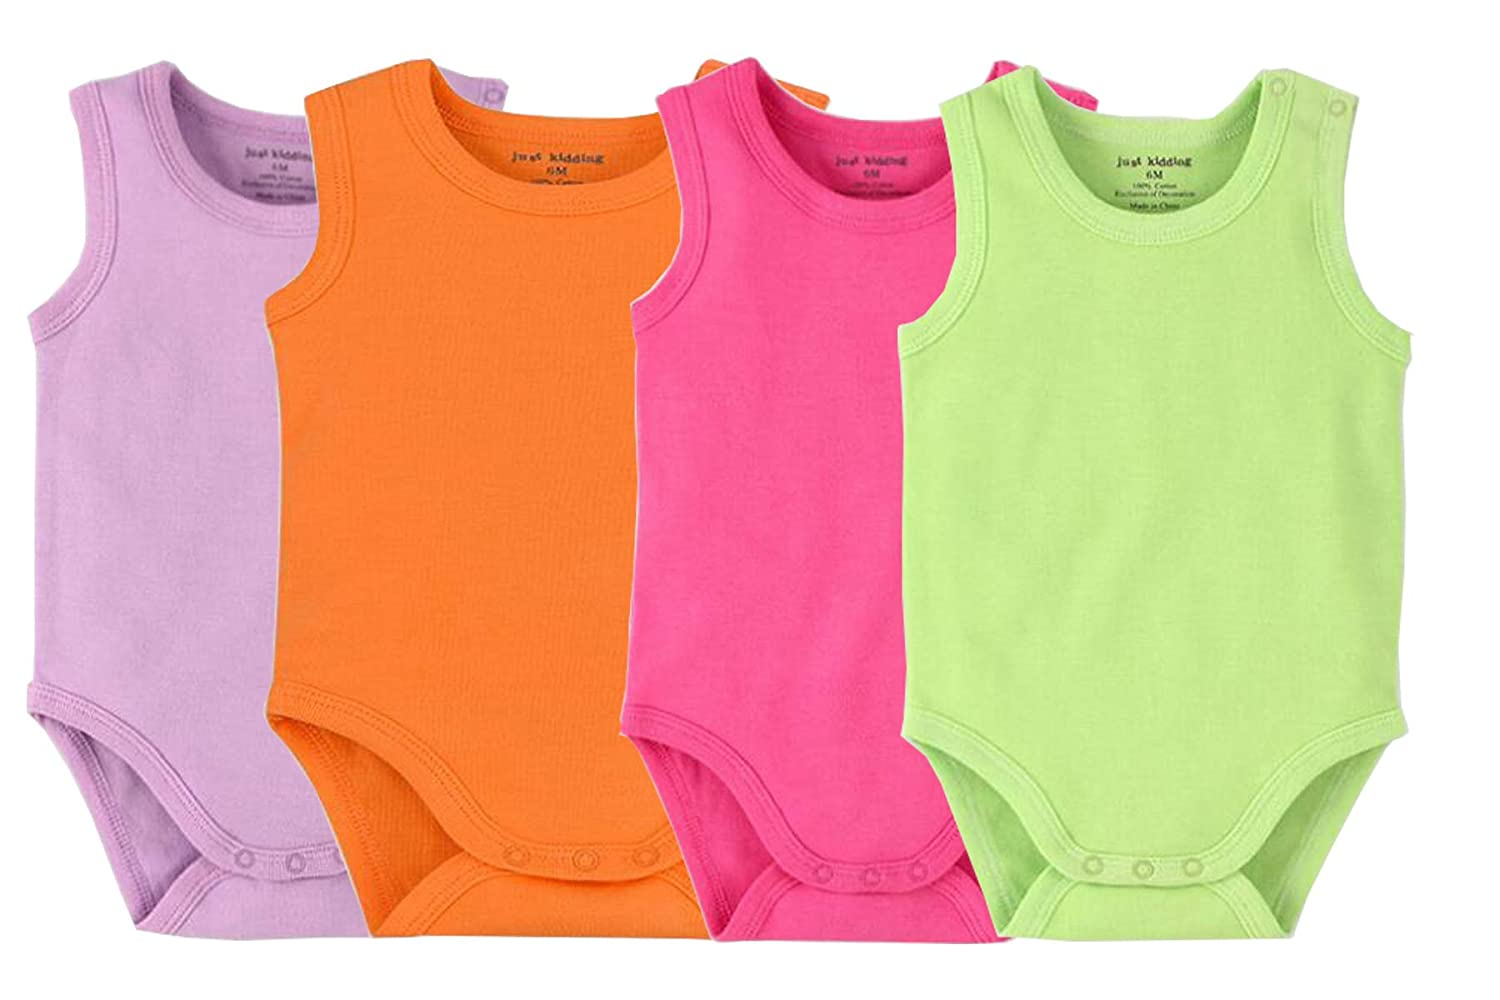 f90eb80b5 Amazon.com: Infant/Toddler Baby Girls Boys Sleeveless Onesies Tank Top  Cotton Baby Bodysuit Pack of Summer Baby Clothes Outfit: Clothing